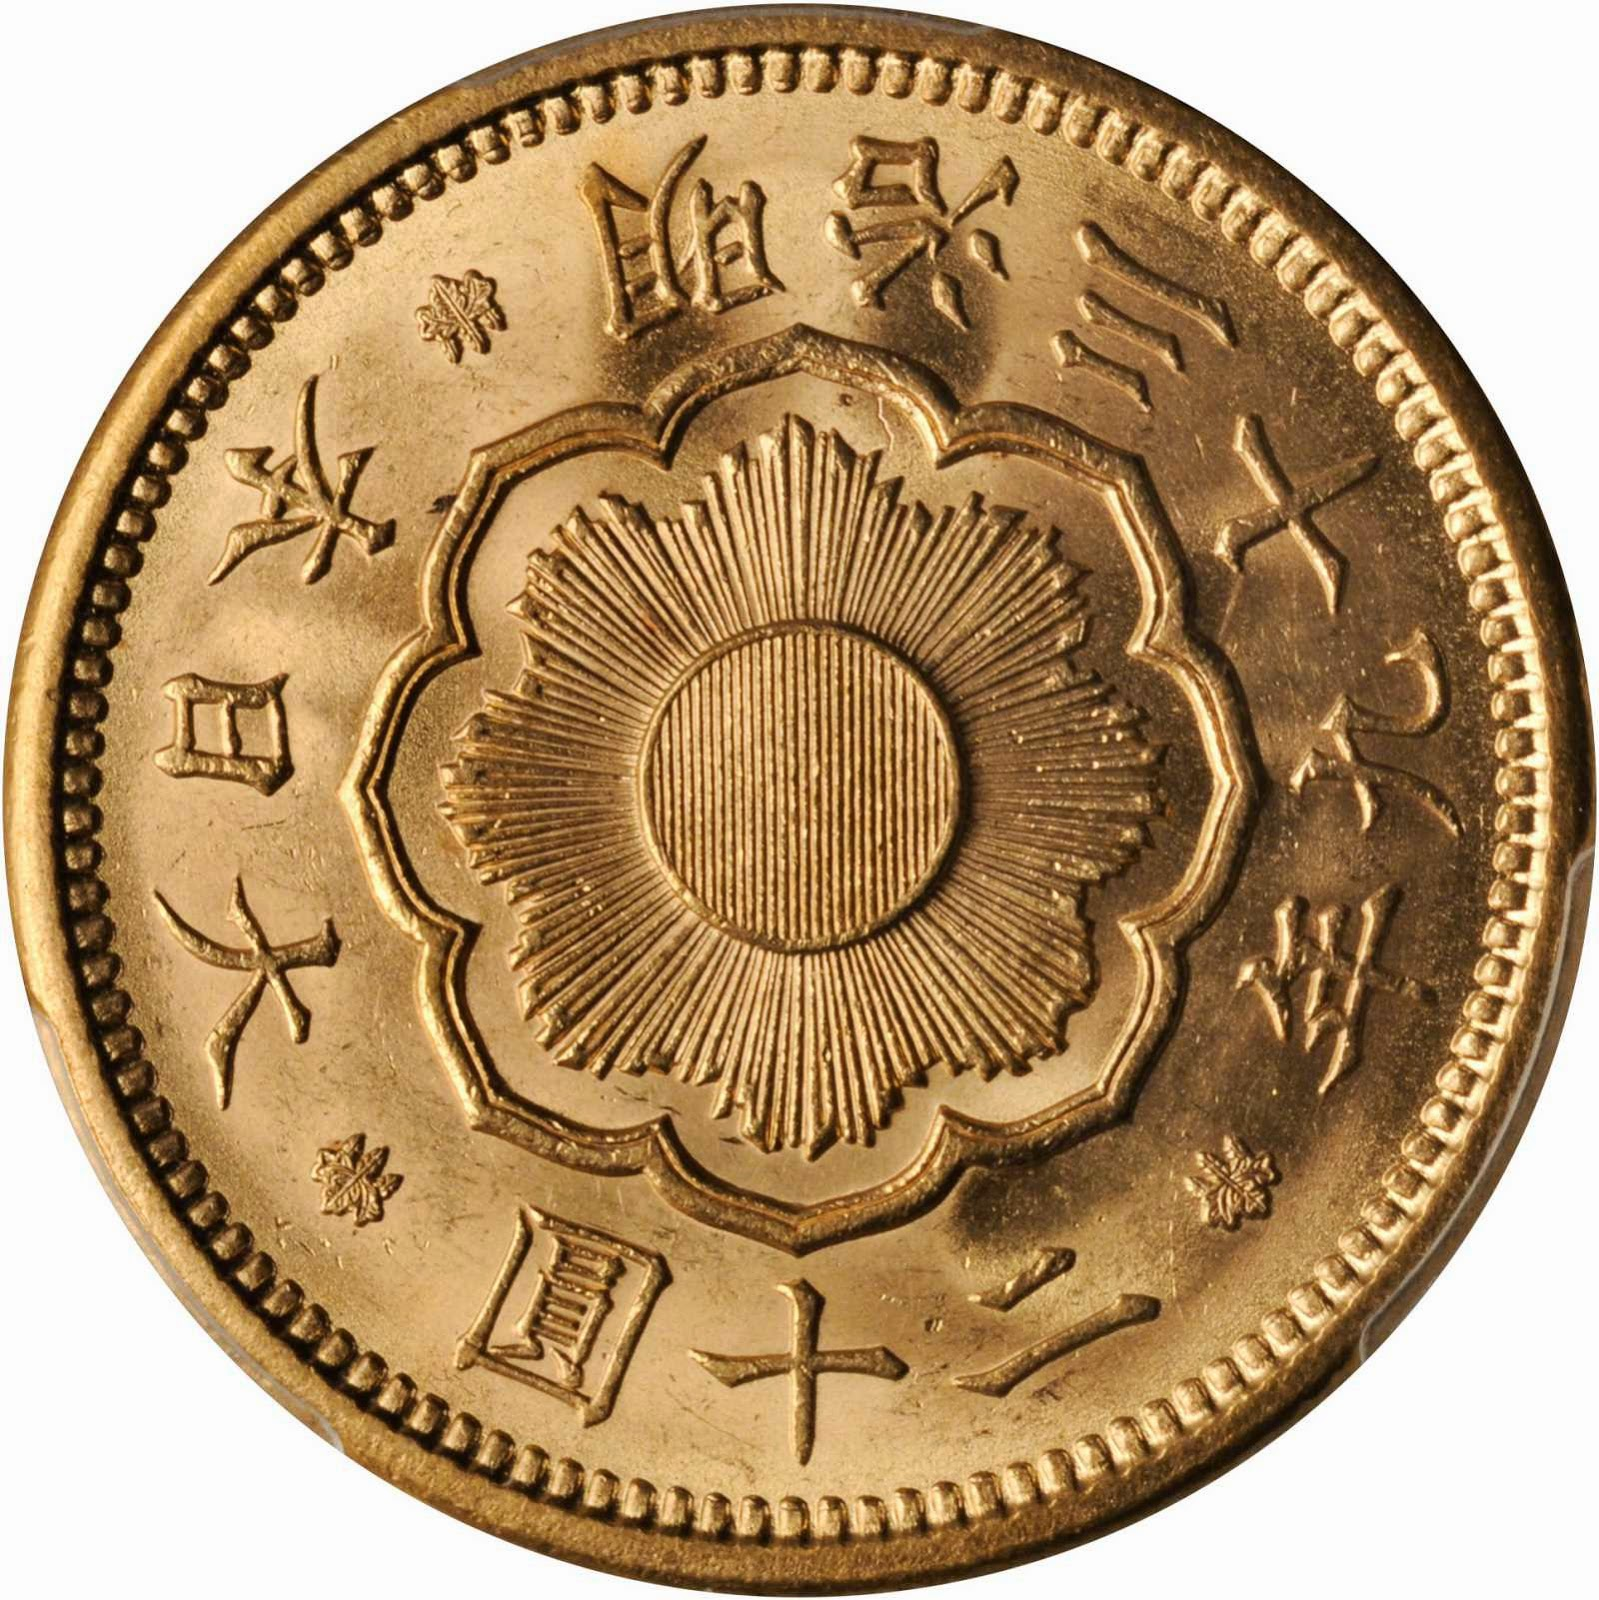 Japanese 20 Yen Gold coin